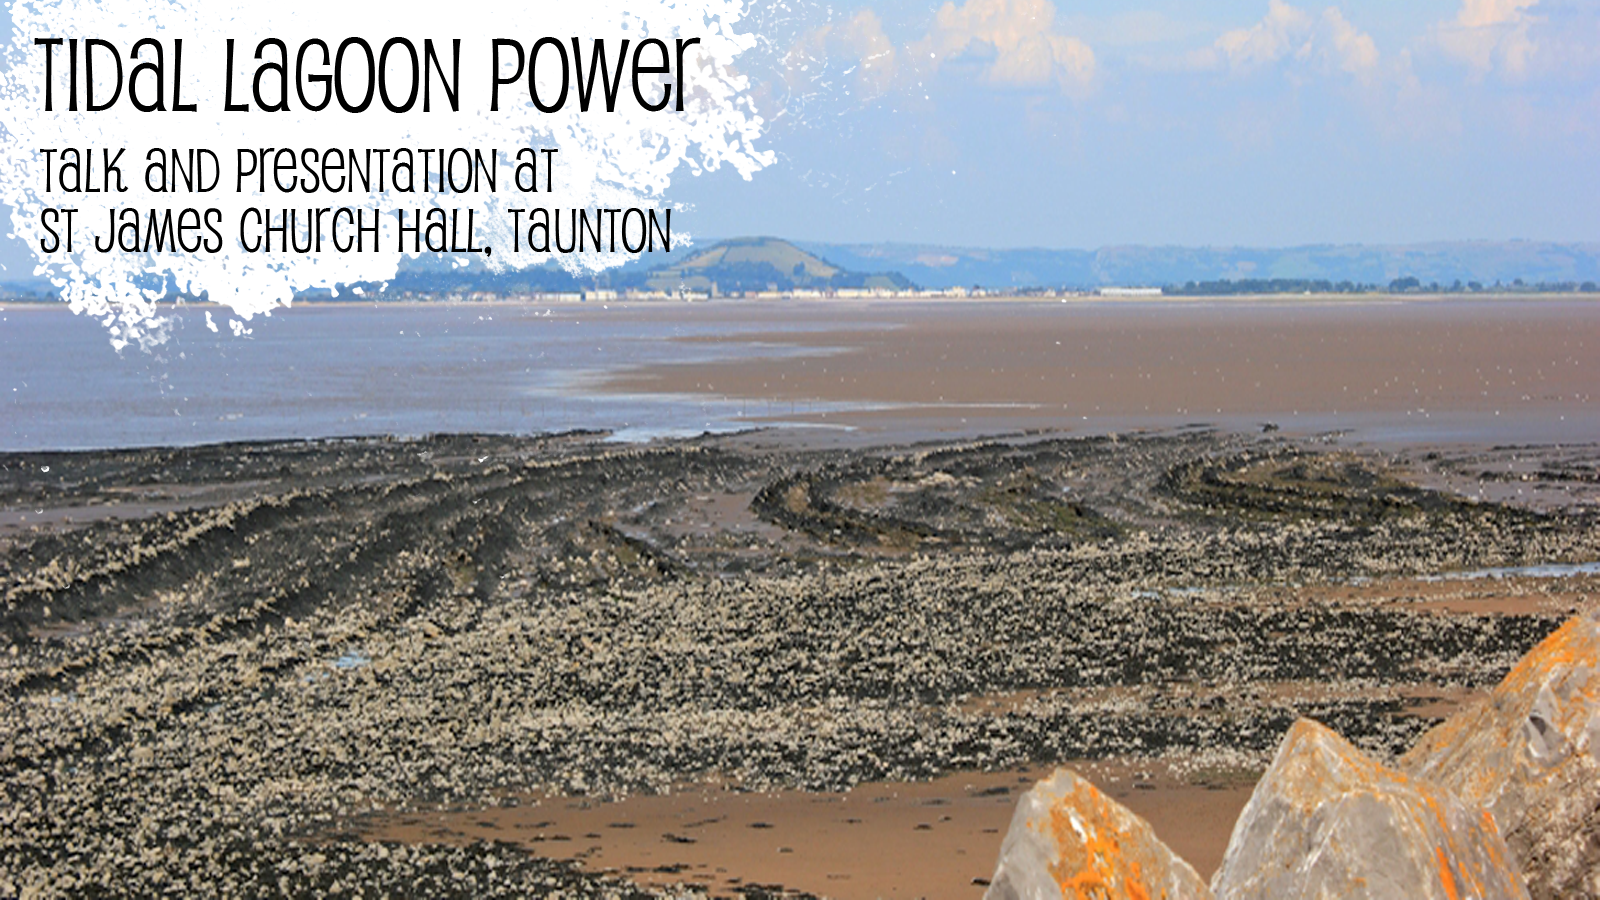 Presentation on tidal lagoon power 21st april taunton transition tidal lagoon banner 3 malvernweather Images